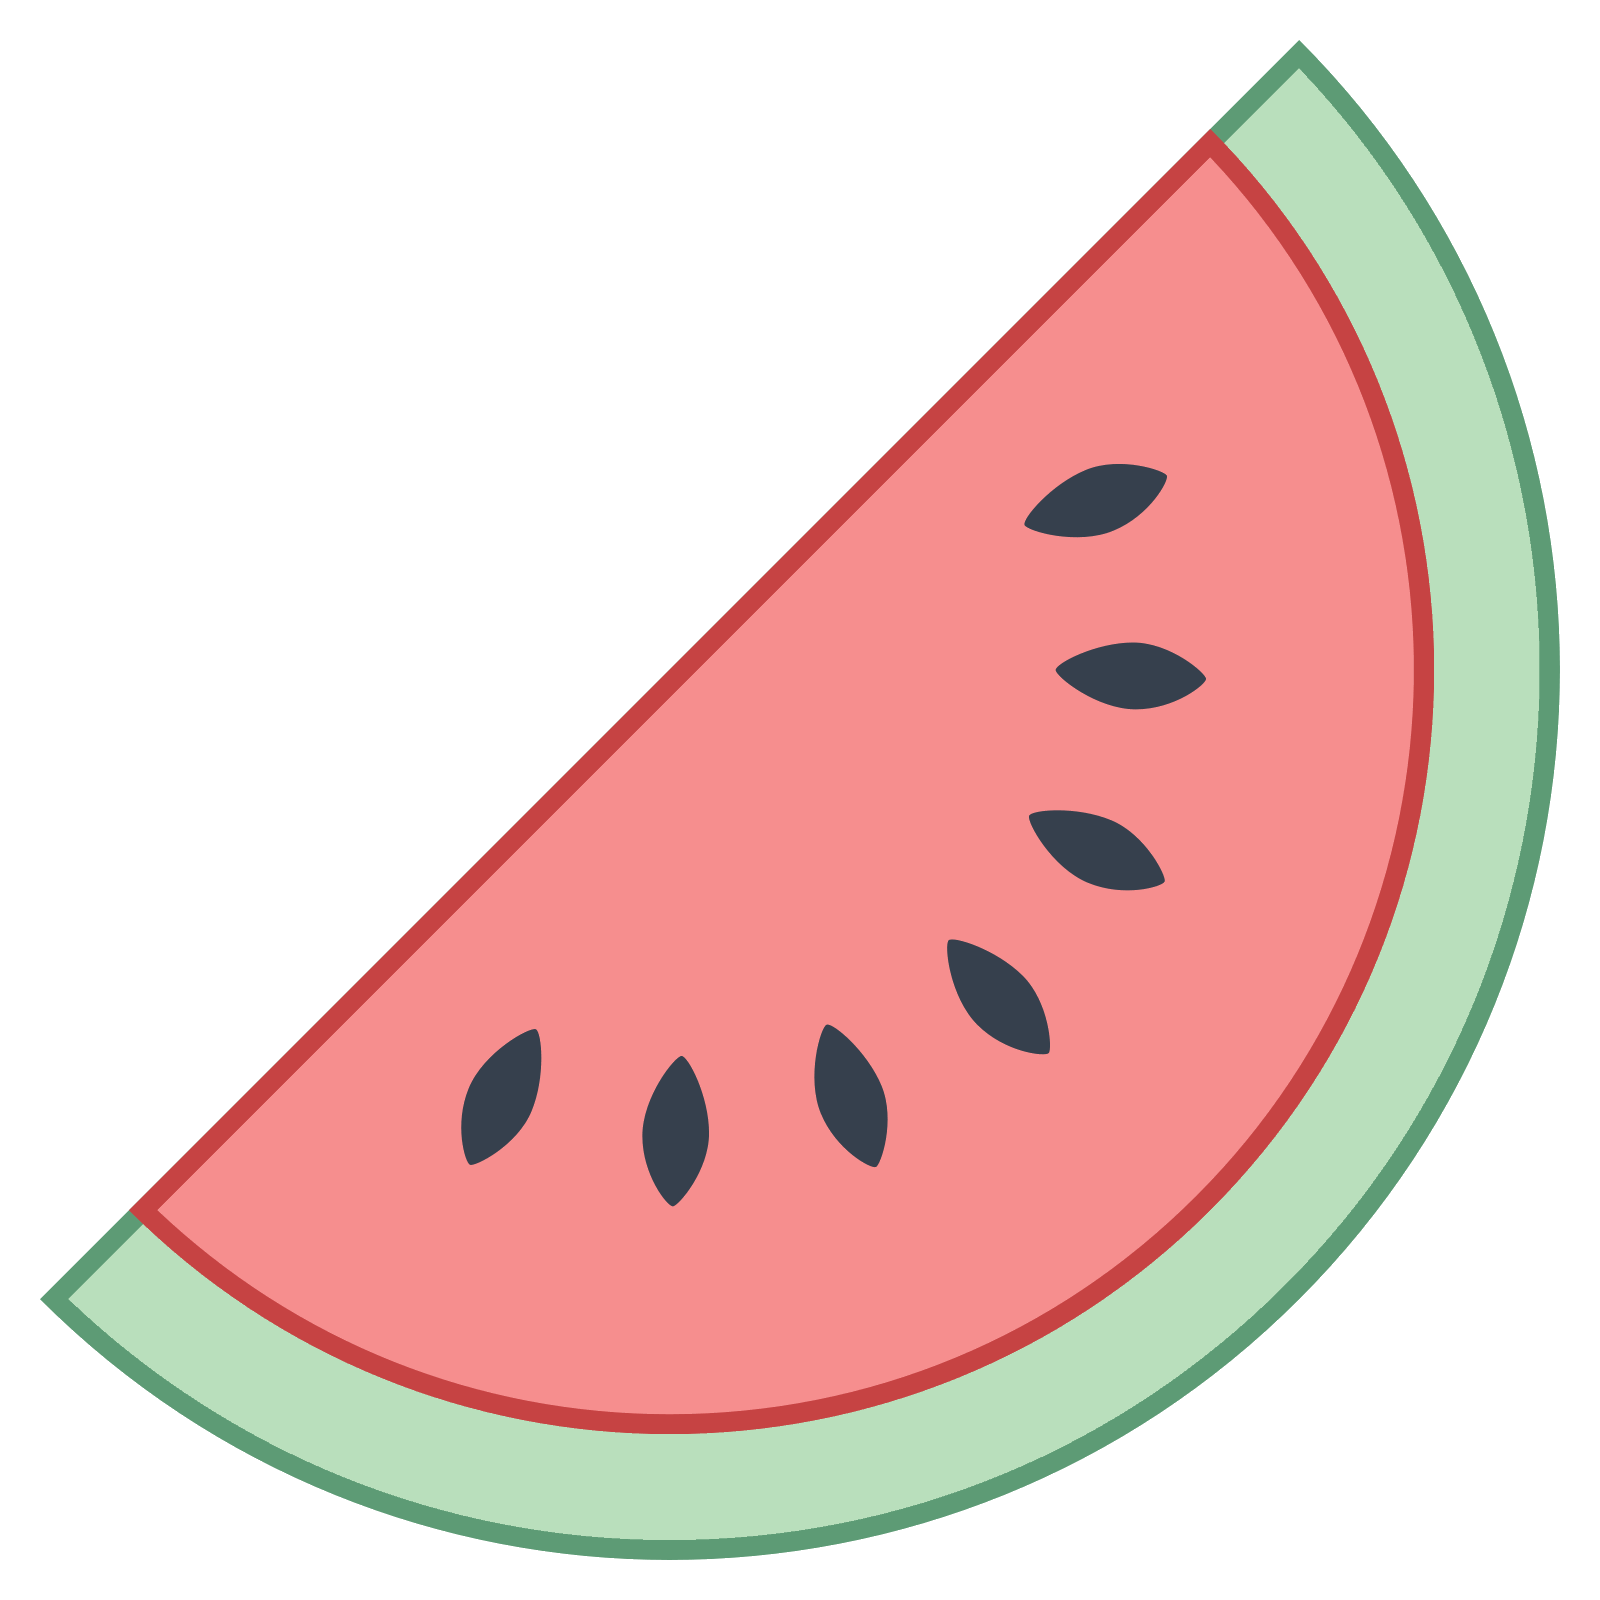 Watermelon clipart smiling watermelon.  png icon there